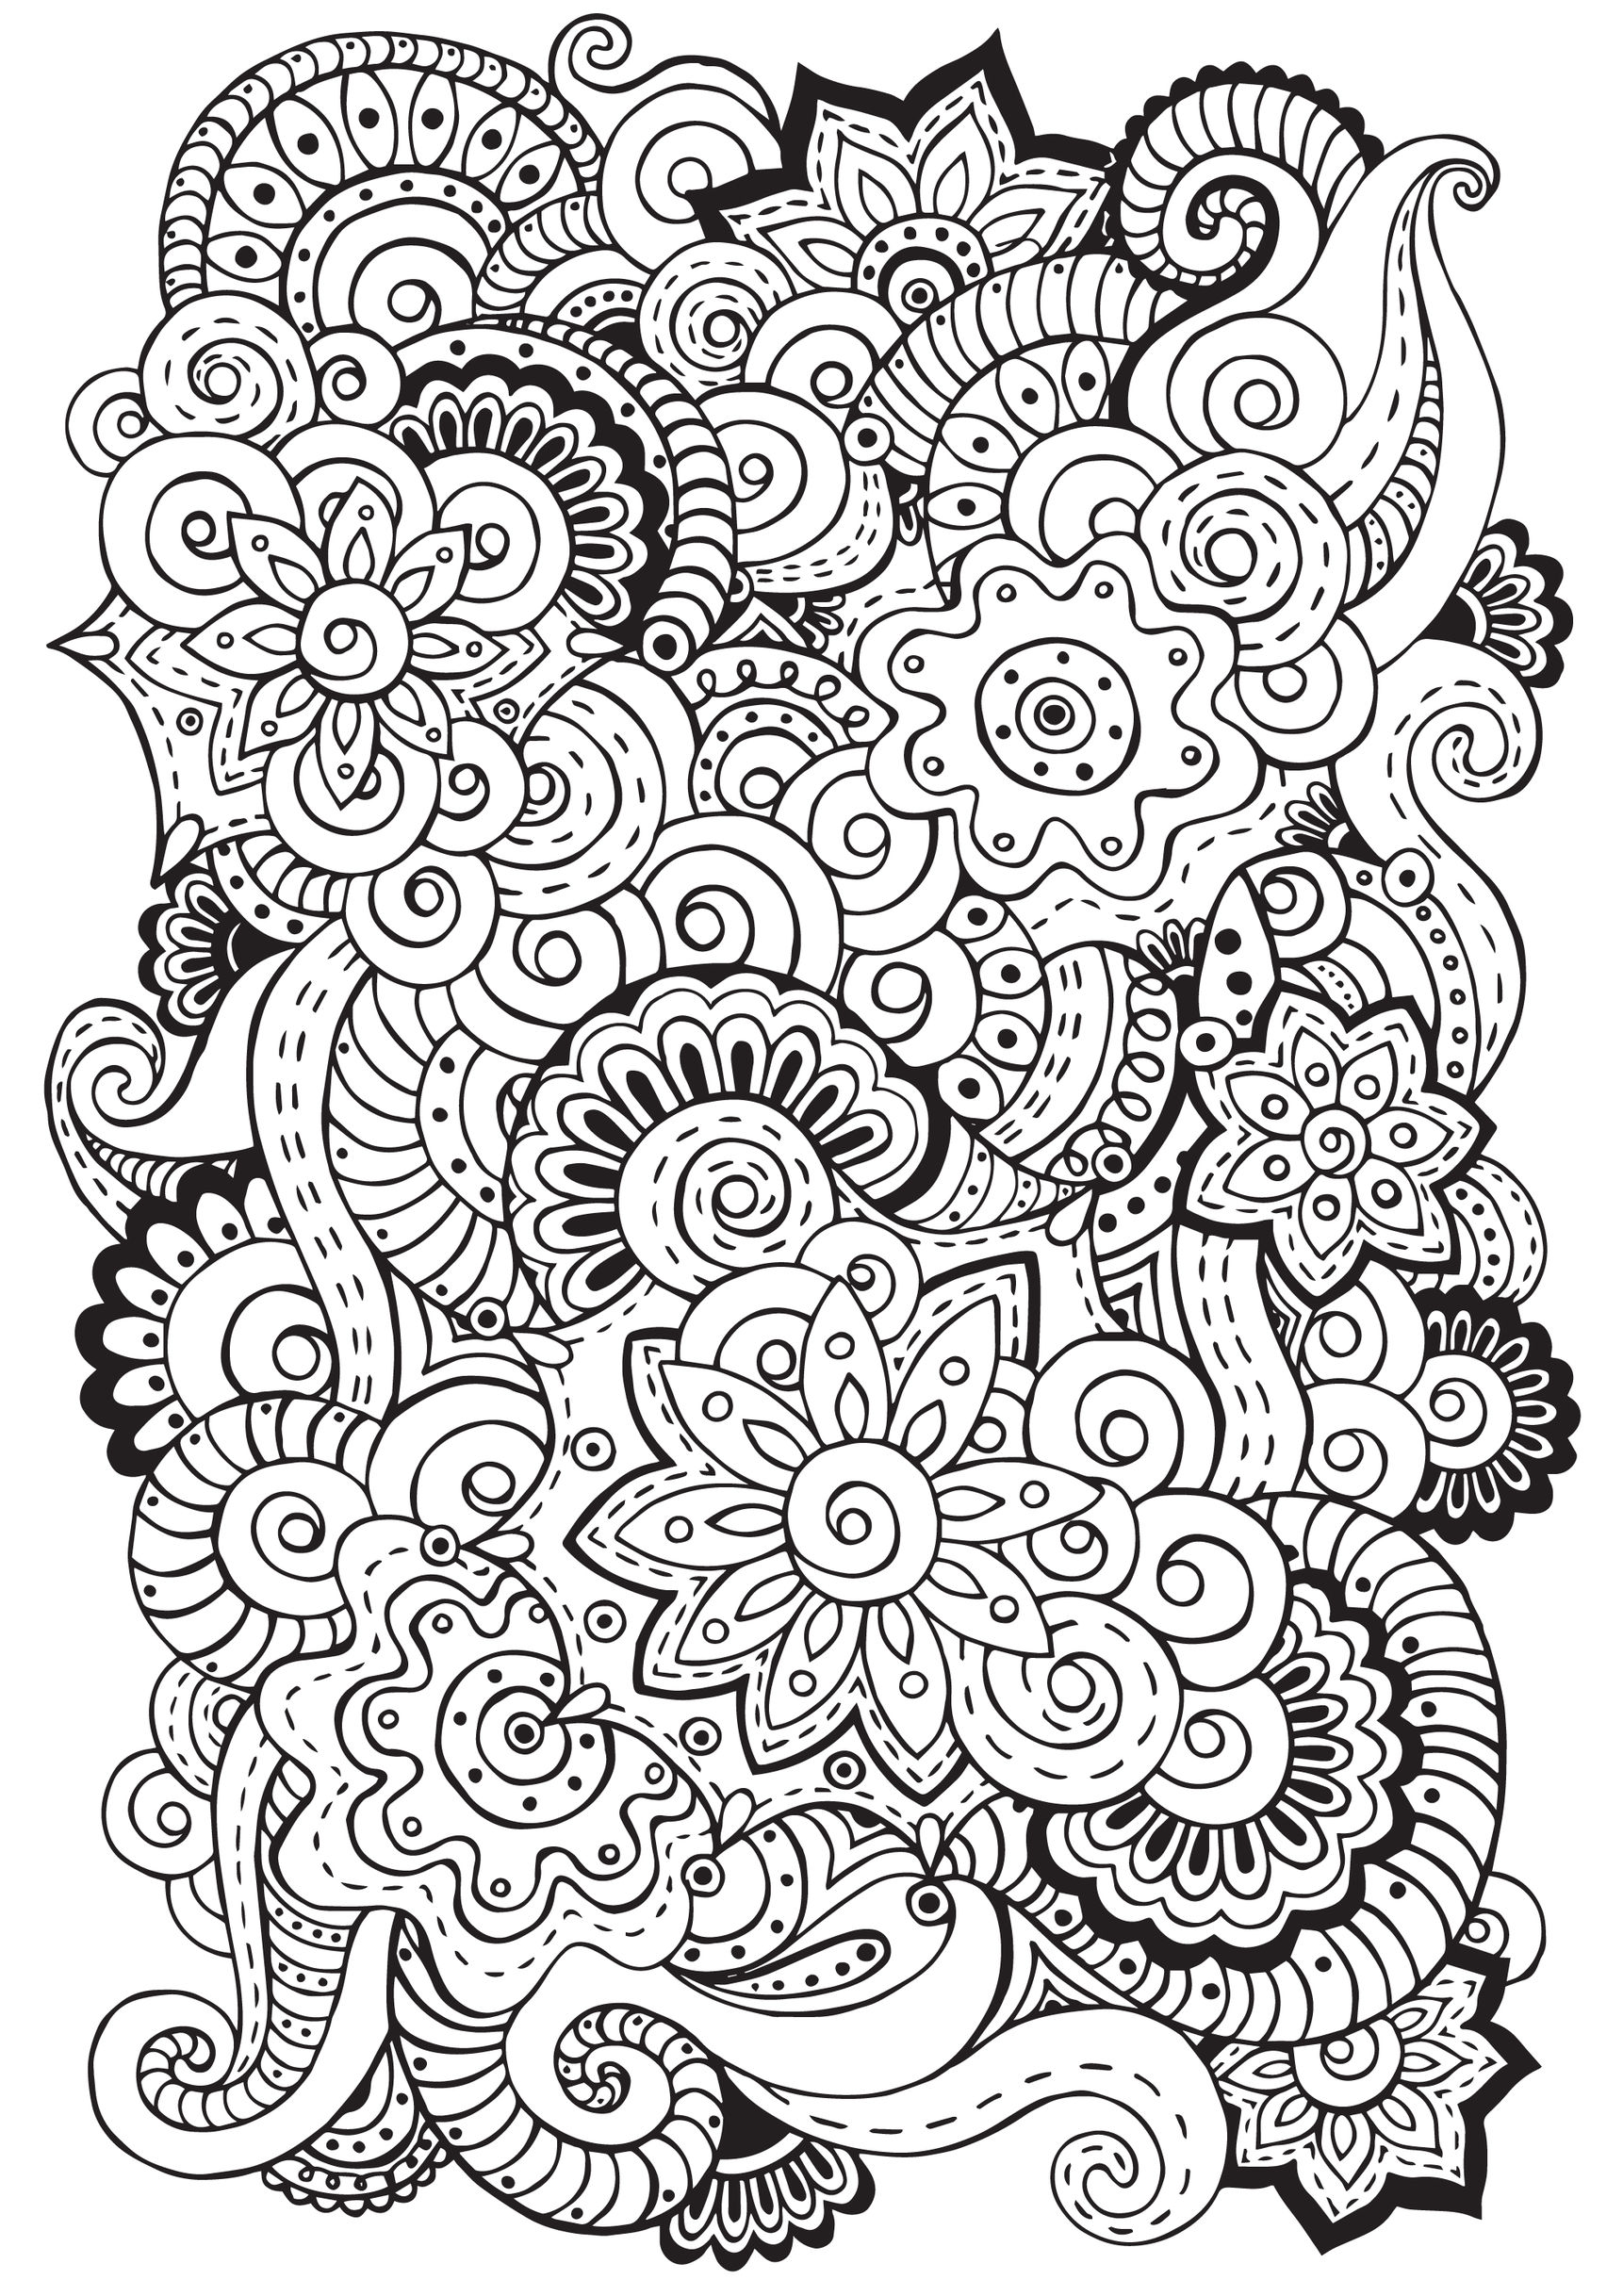 Co coloring book page template - Co Co Co Coloring Book For Mindfulness Mindful Meditation The Art Of Adult Coloring Books